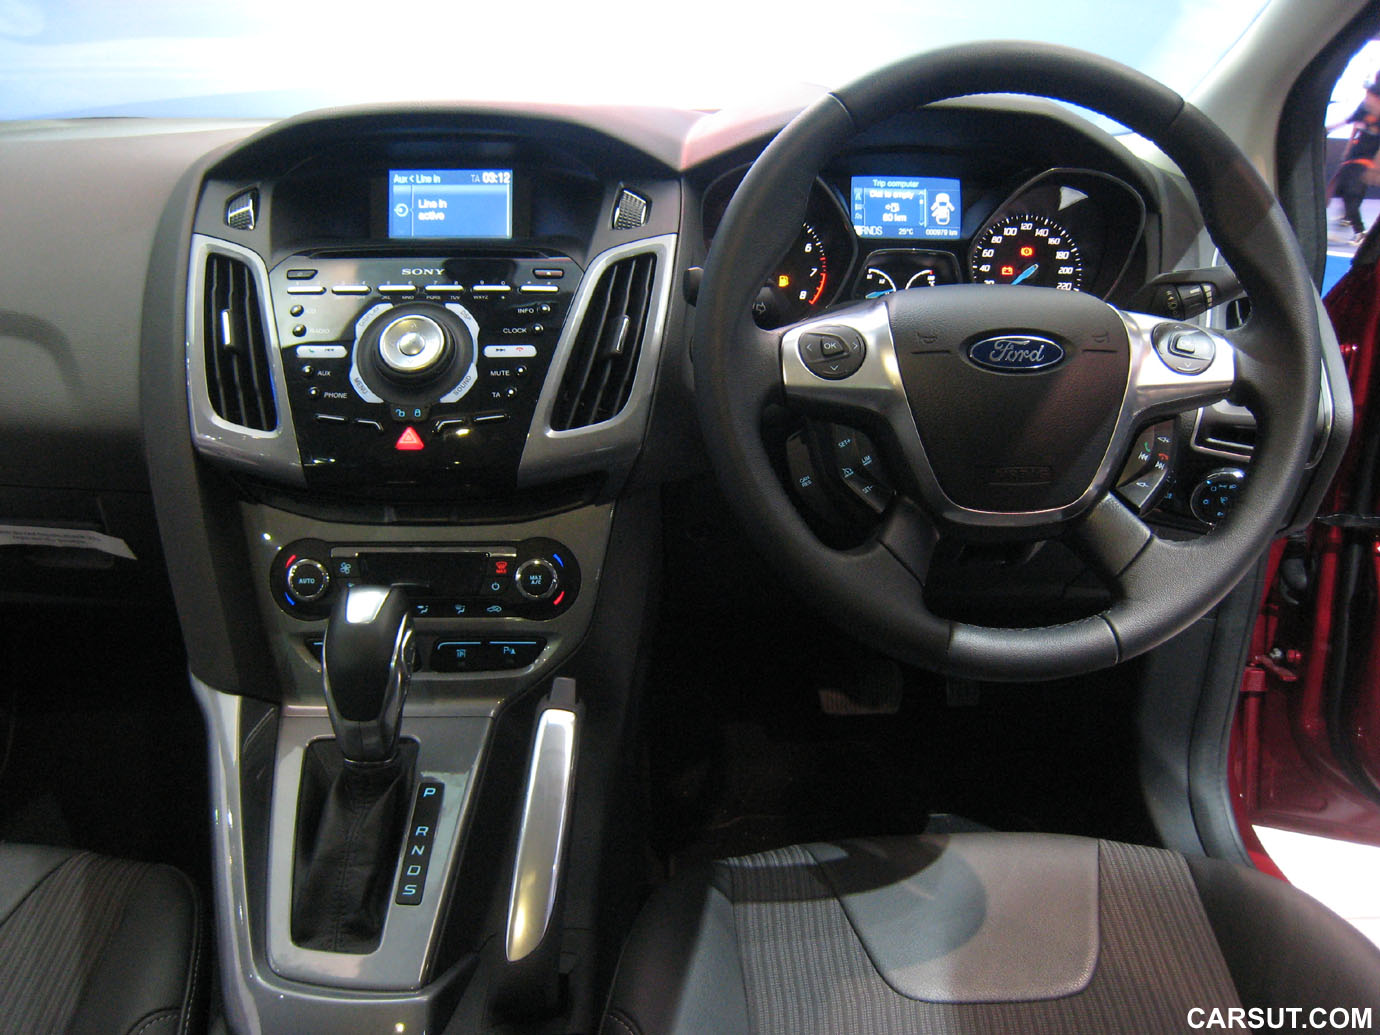 a review on 2012 all new ford focus carsut understand cars and drive better. Black Bedroom Furniture Sets. Home Design Ideas